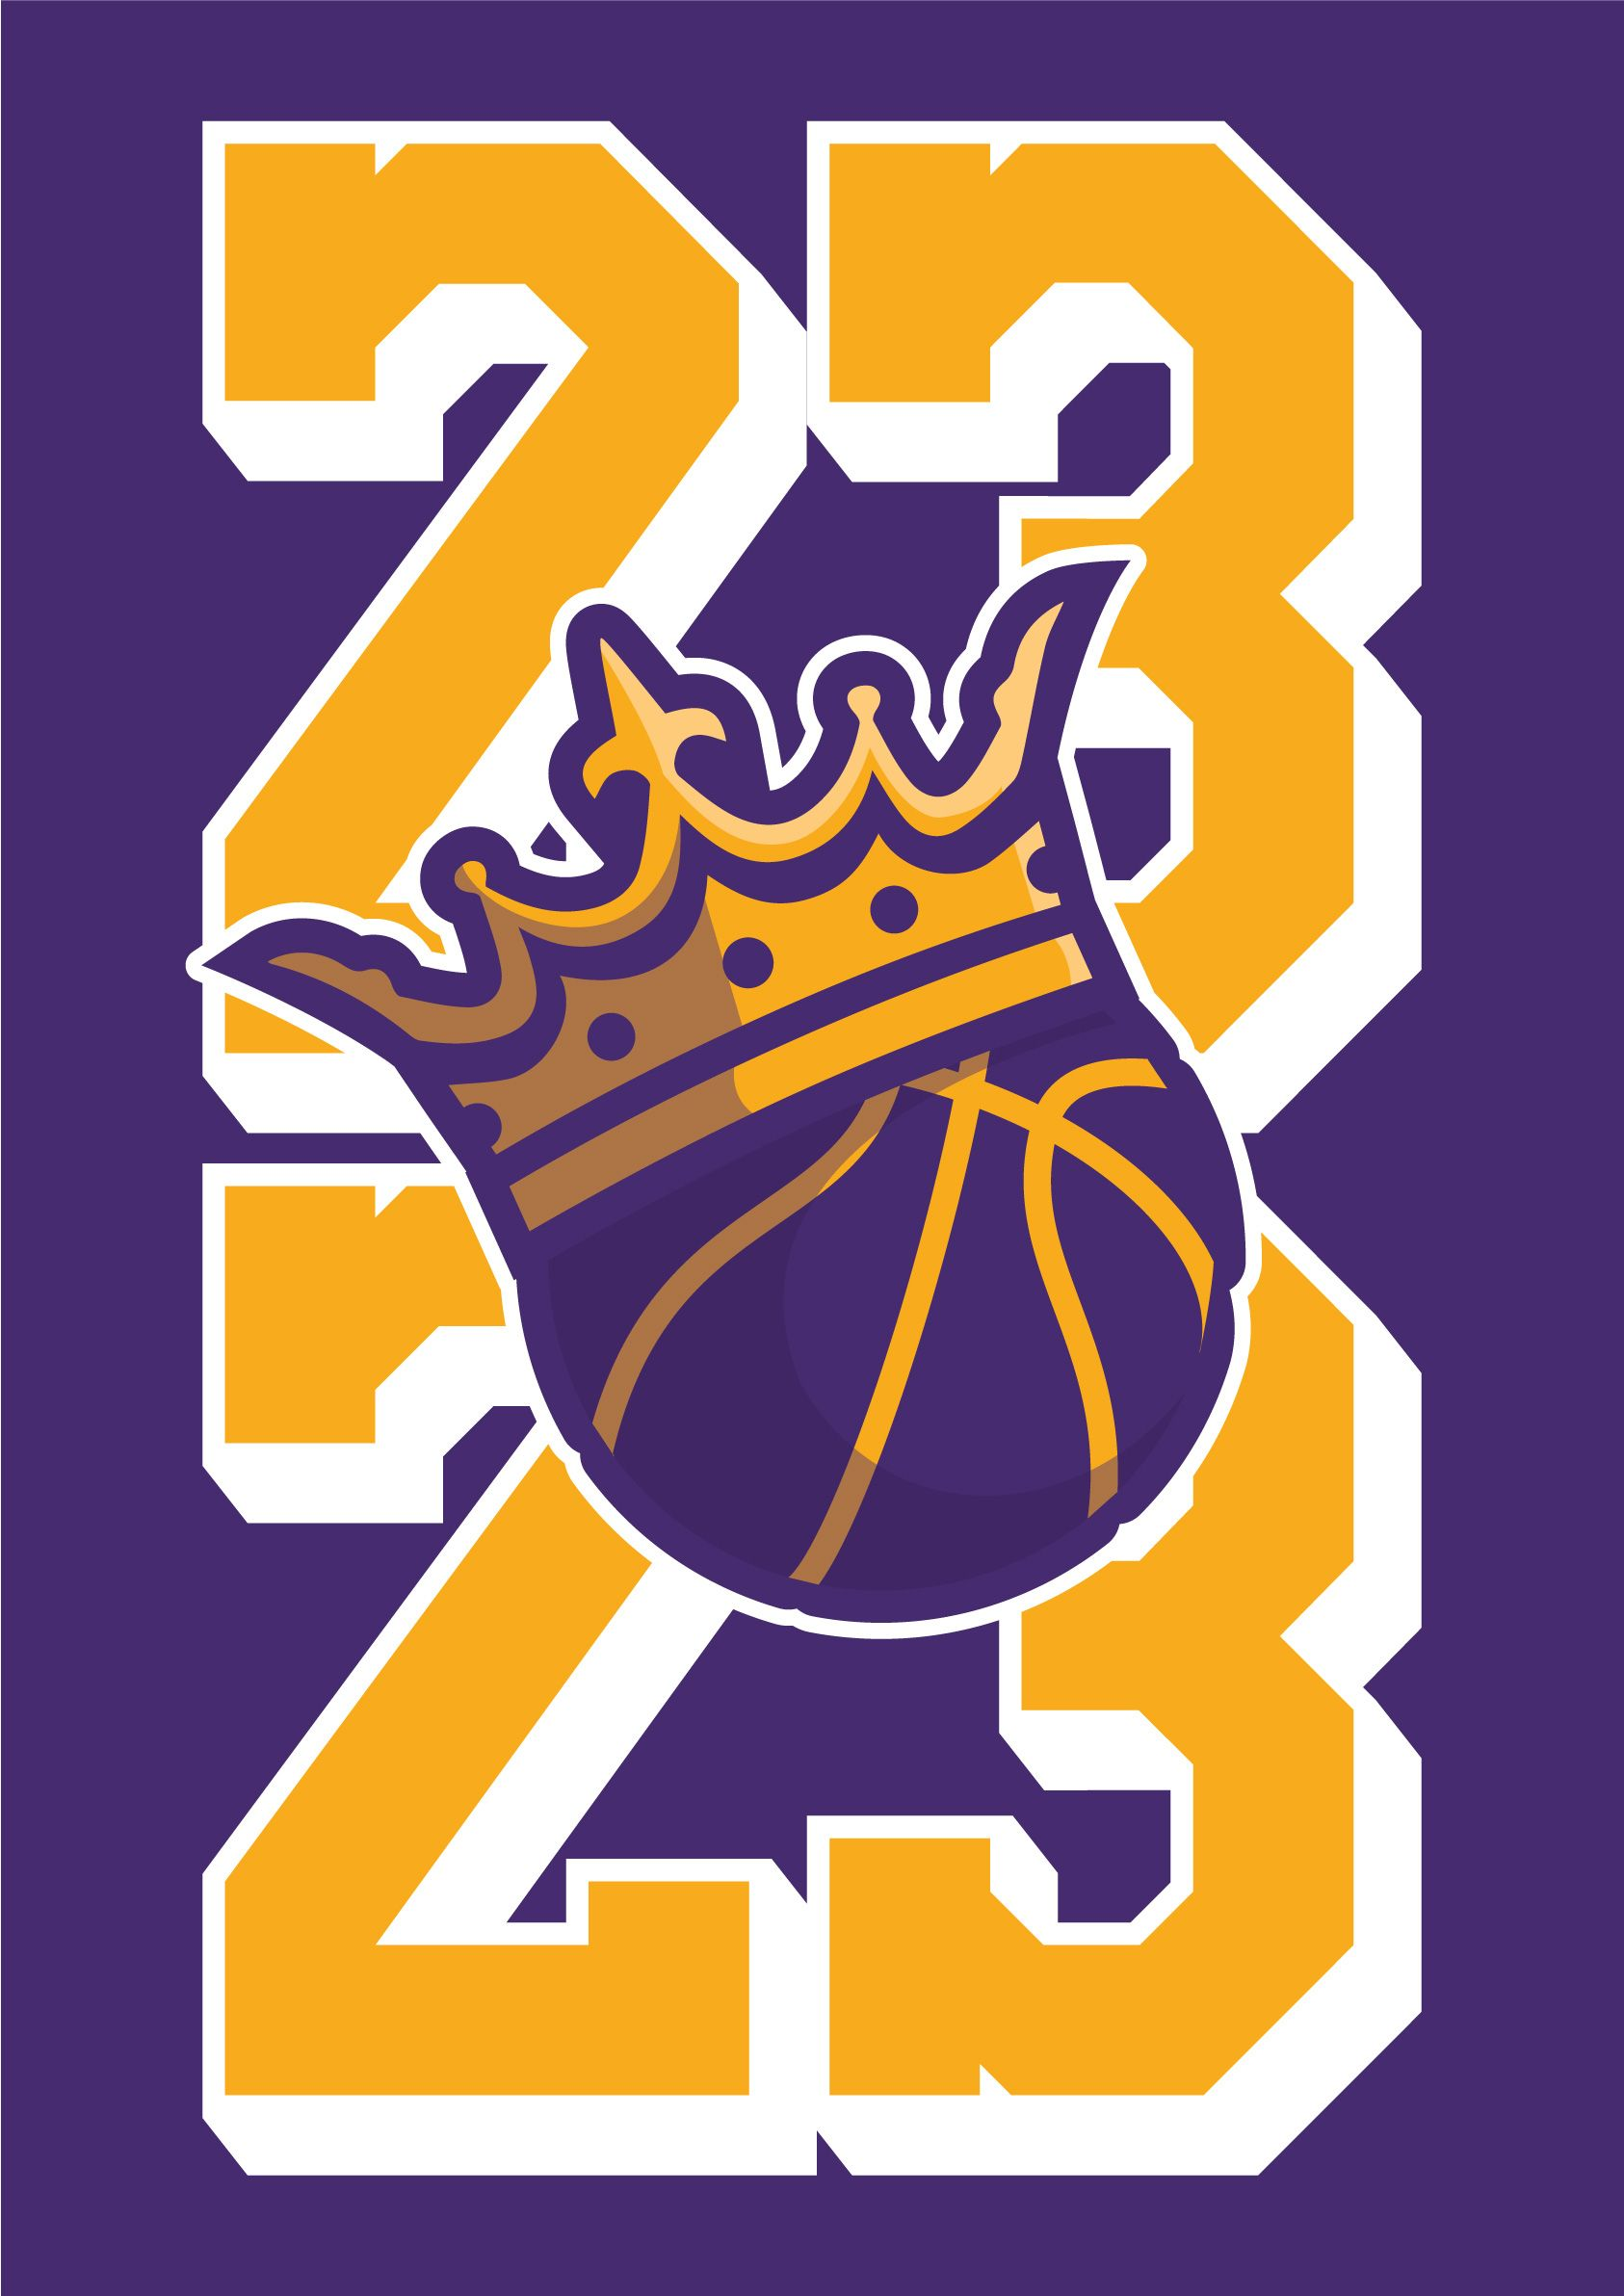 King Of La Minimal Downloadable Wall Art Print Poster By Robot Eats Popcorn Inspired By Lebron James Movin Lebron James Art Lebron James Lebron James Lakers [ 2384 x 1686 Pixel ]